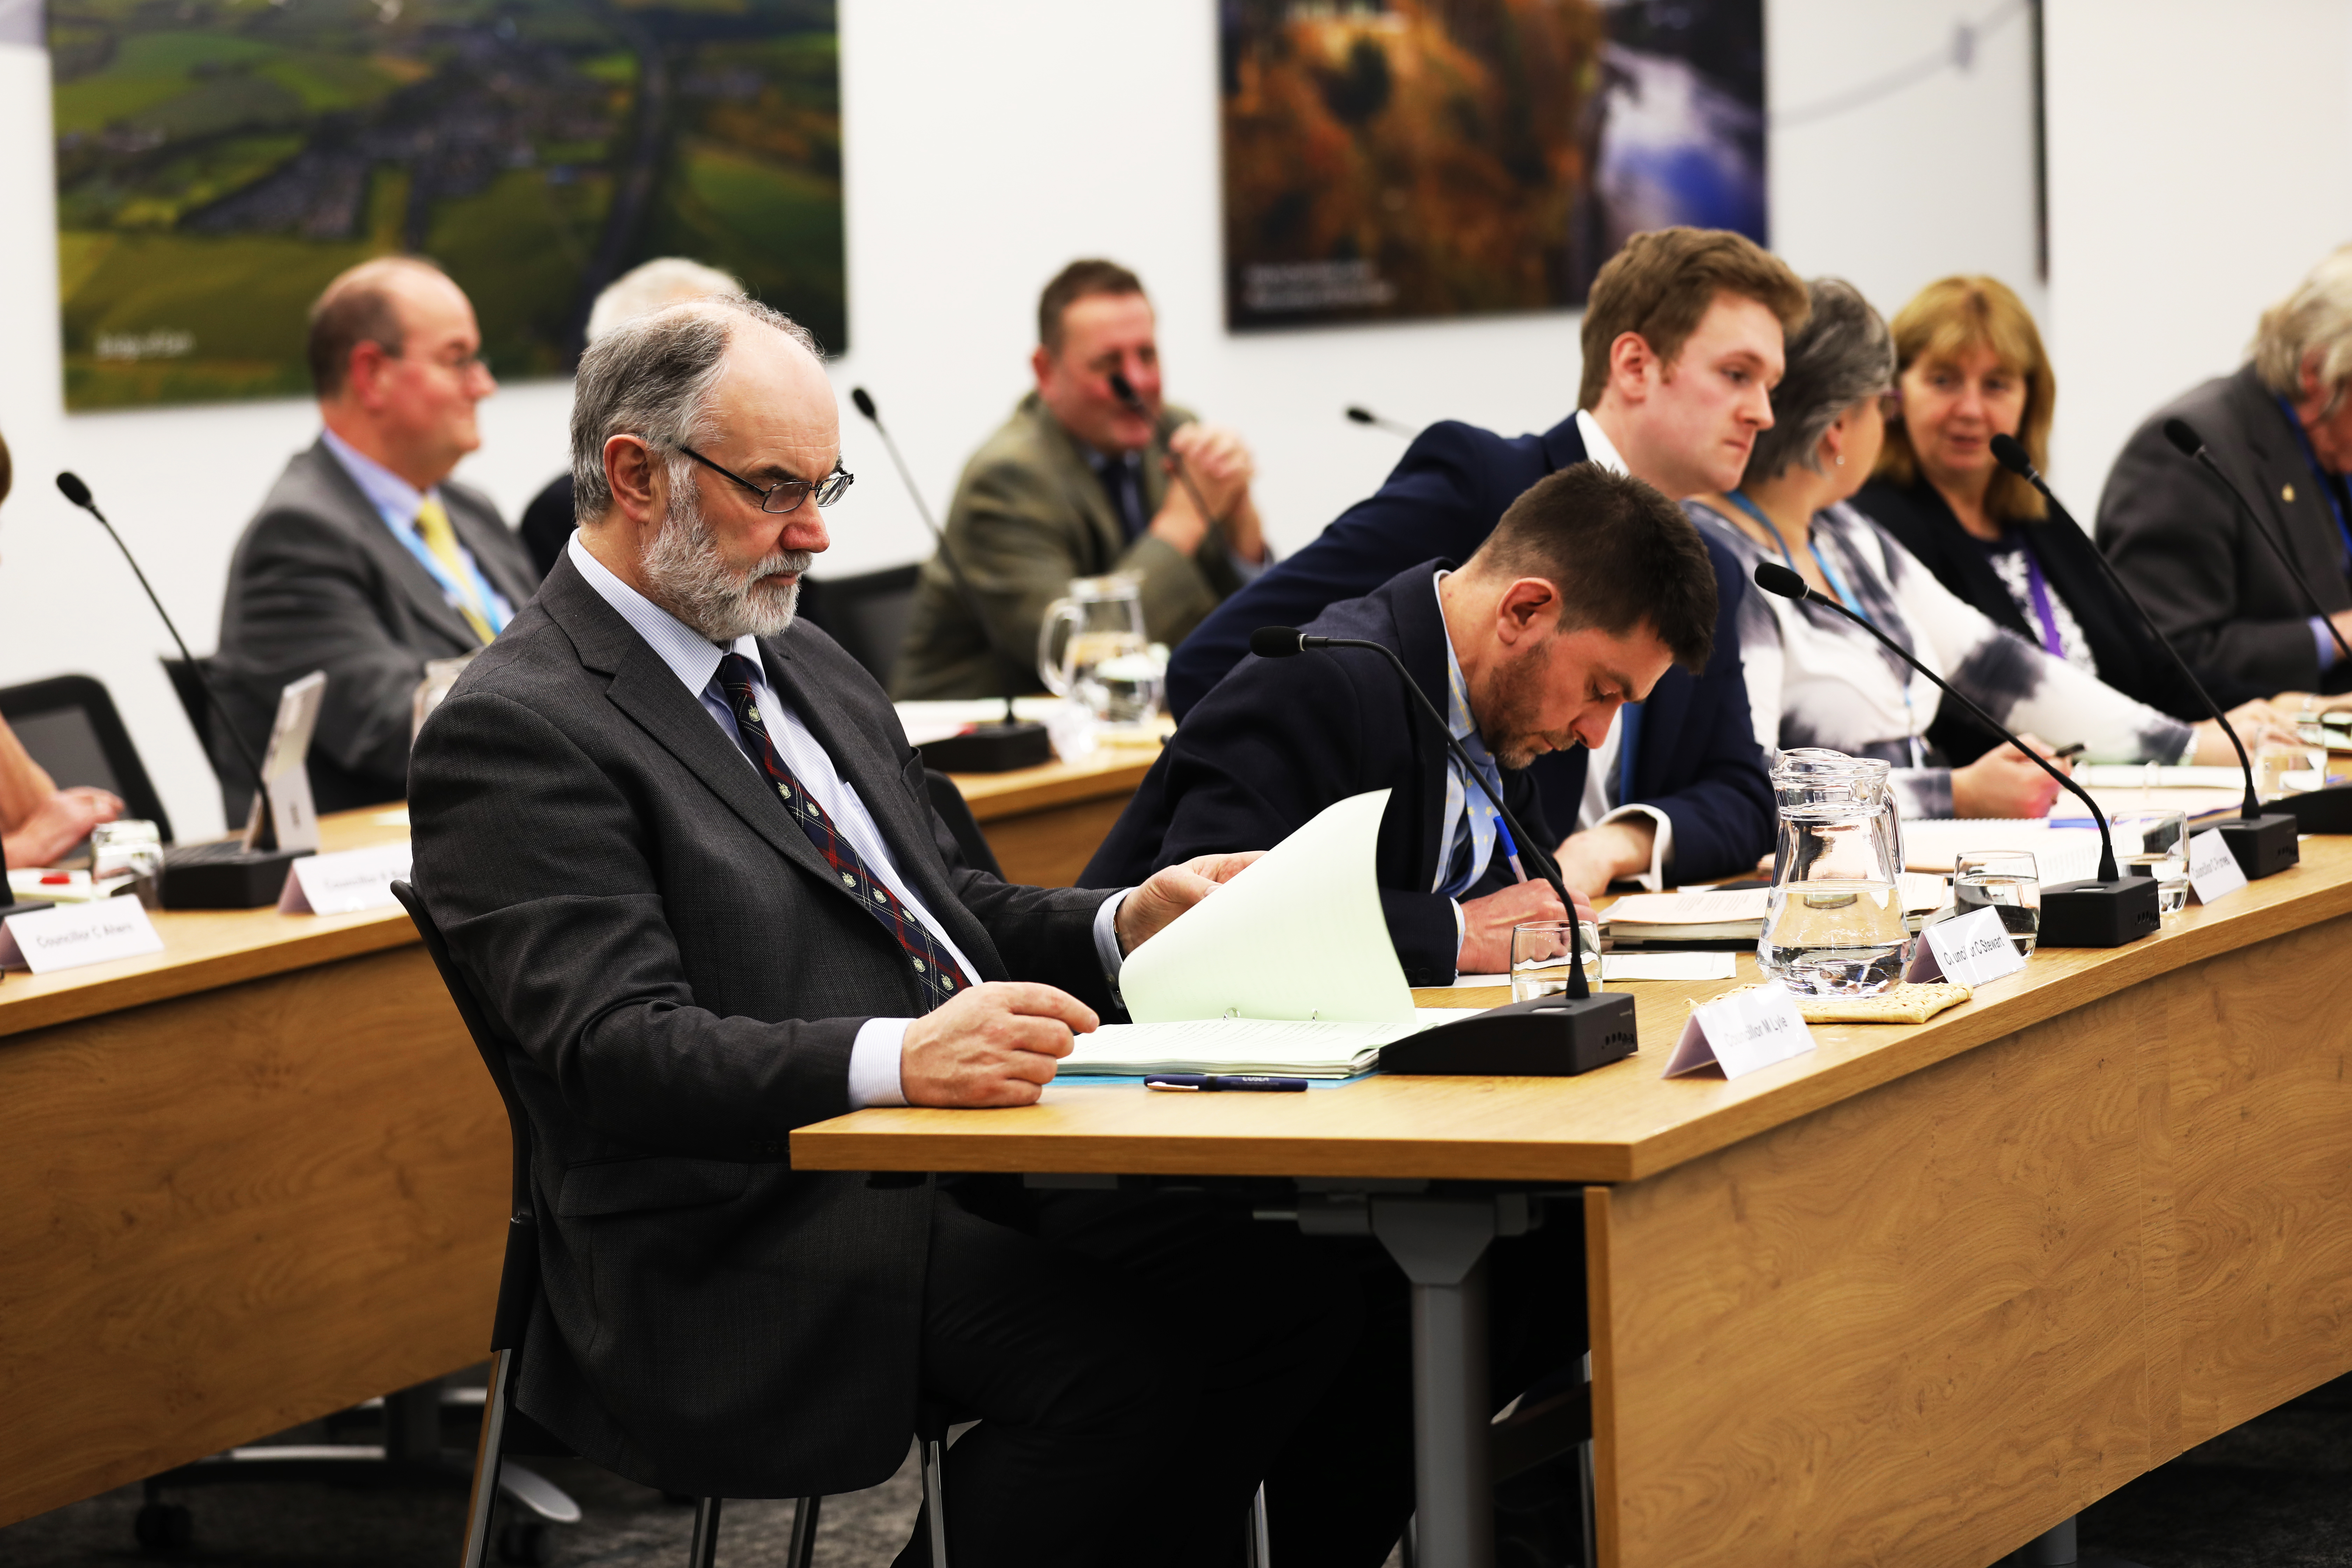 A previous debate in the council chambers